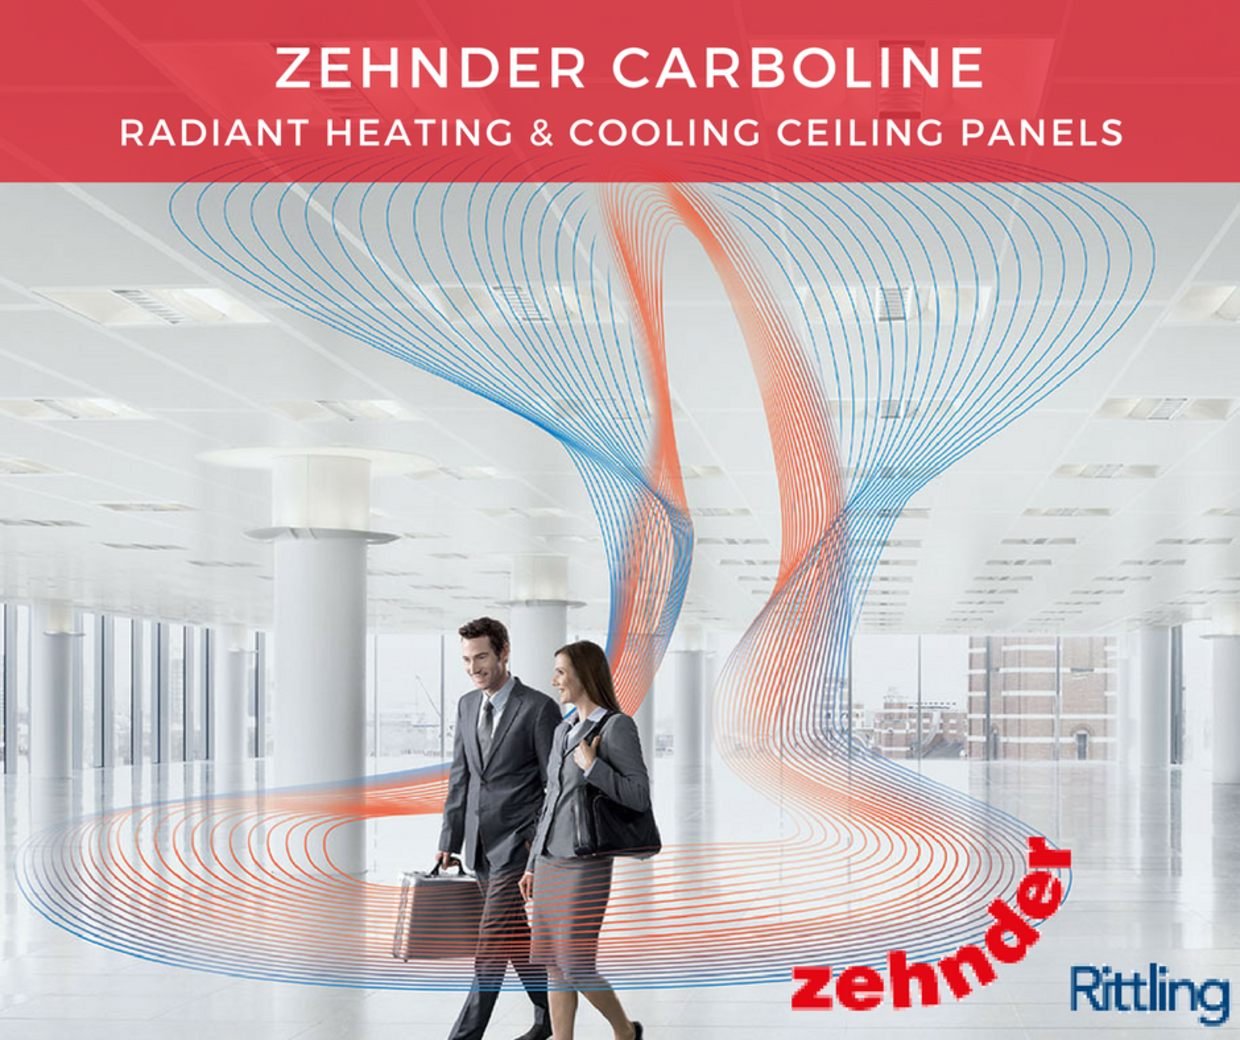 http://www.zehnder-rittling.com/home/low-temperature-heating-and-high-temperature-cooling-systems/carboline-radiant-ceiling-panels/